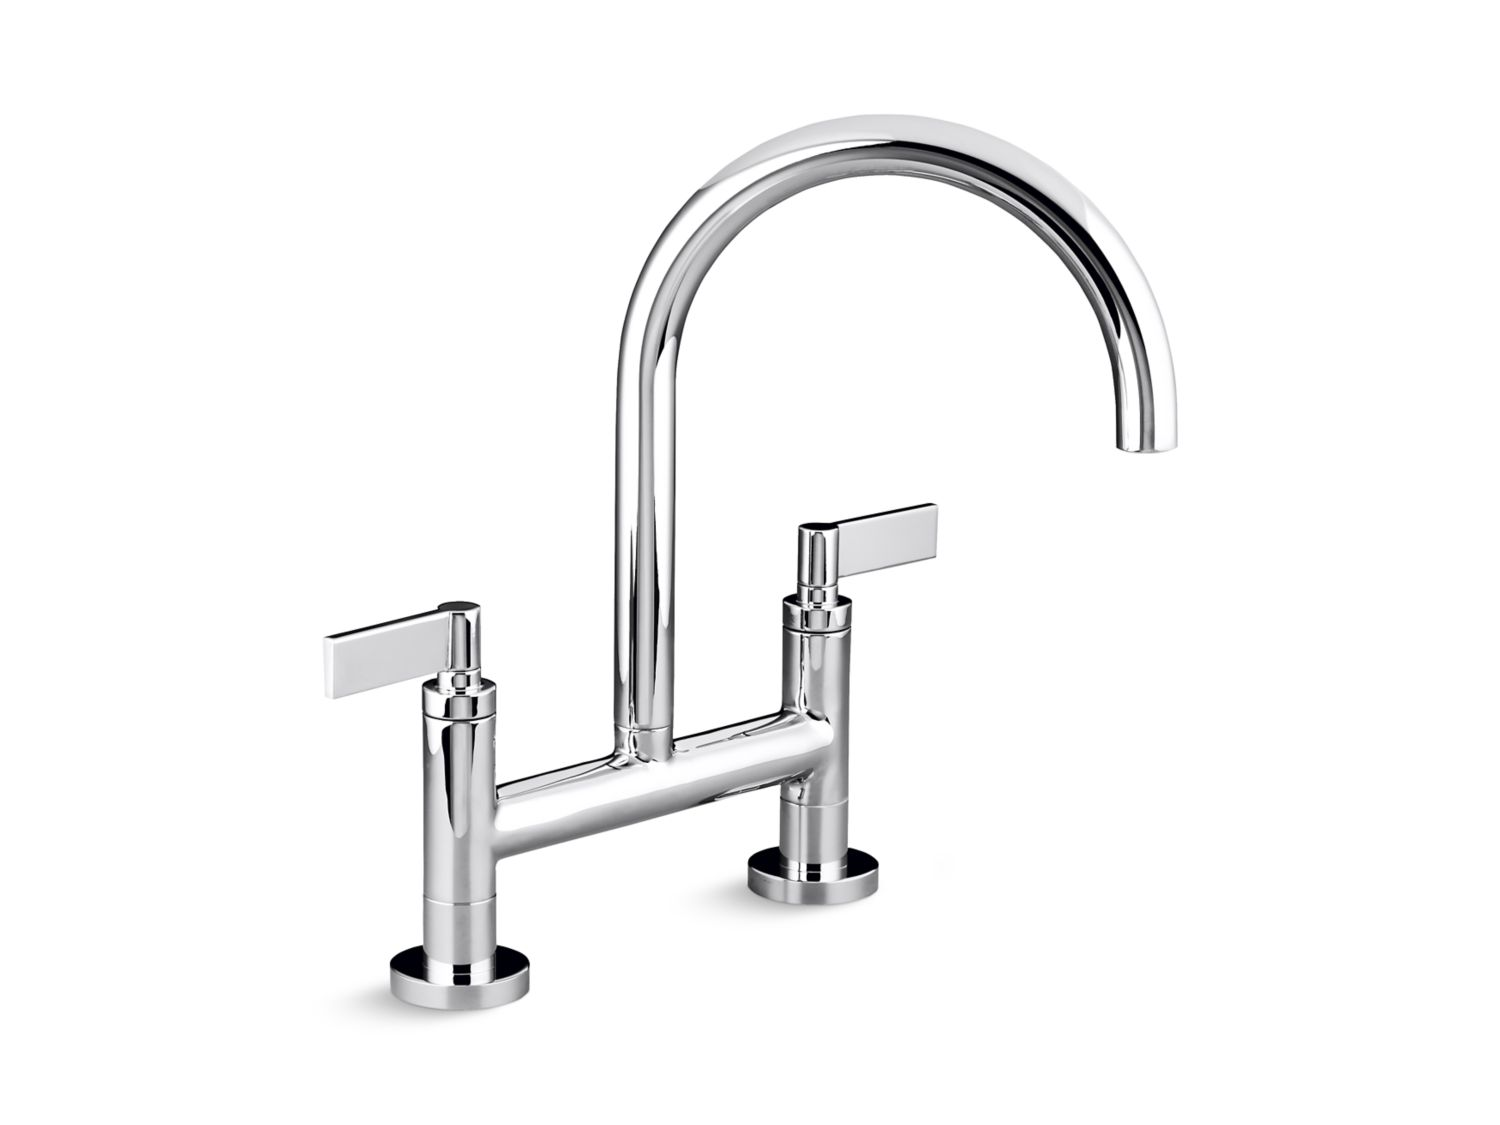 kallista kitchen faucets one deck mounted bridge kitchen faucet lever handles 12812